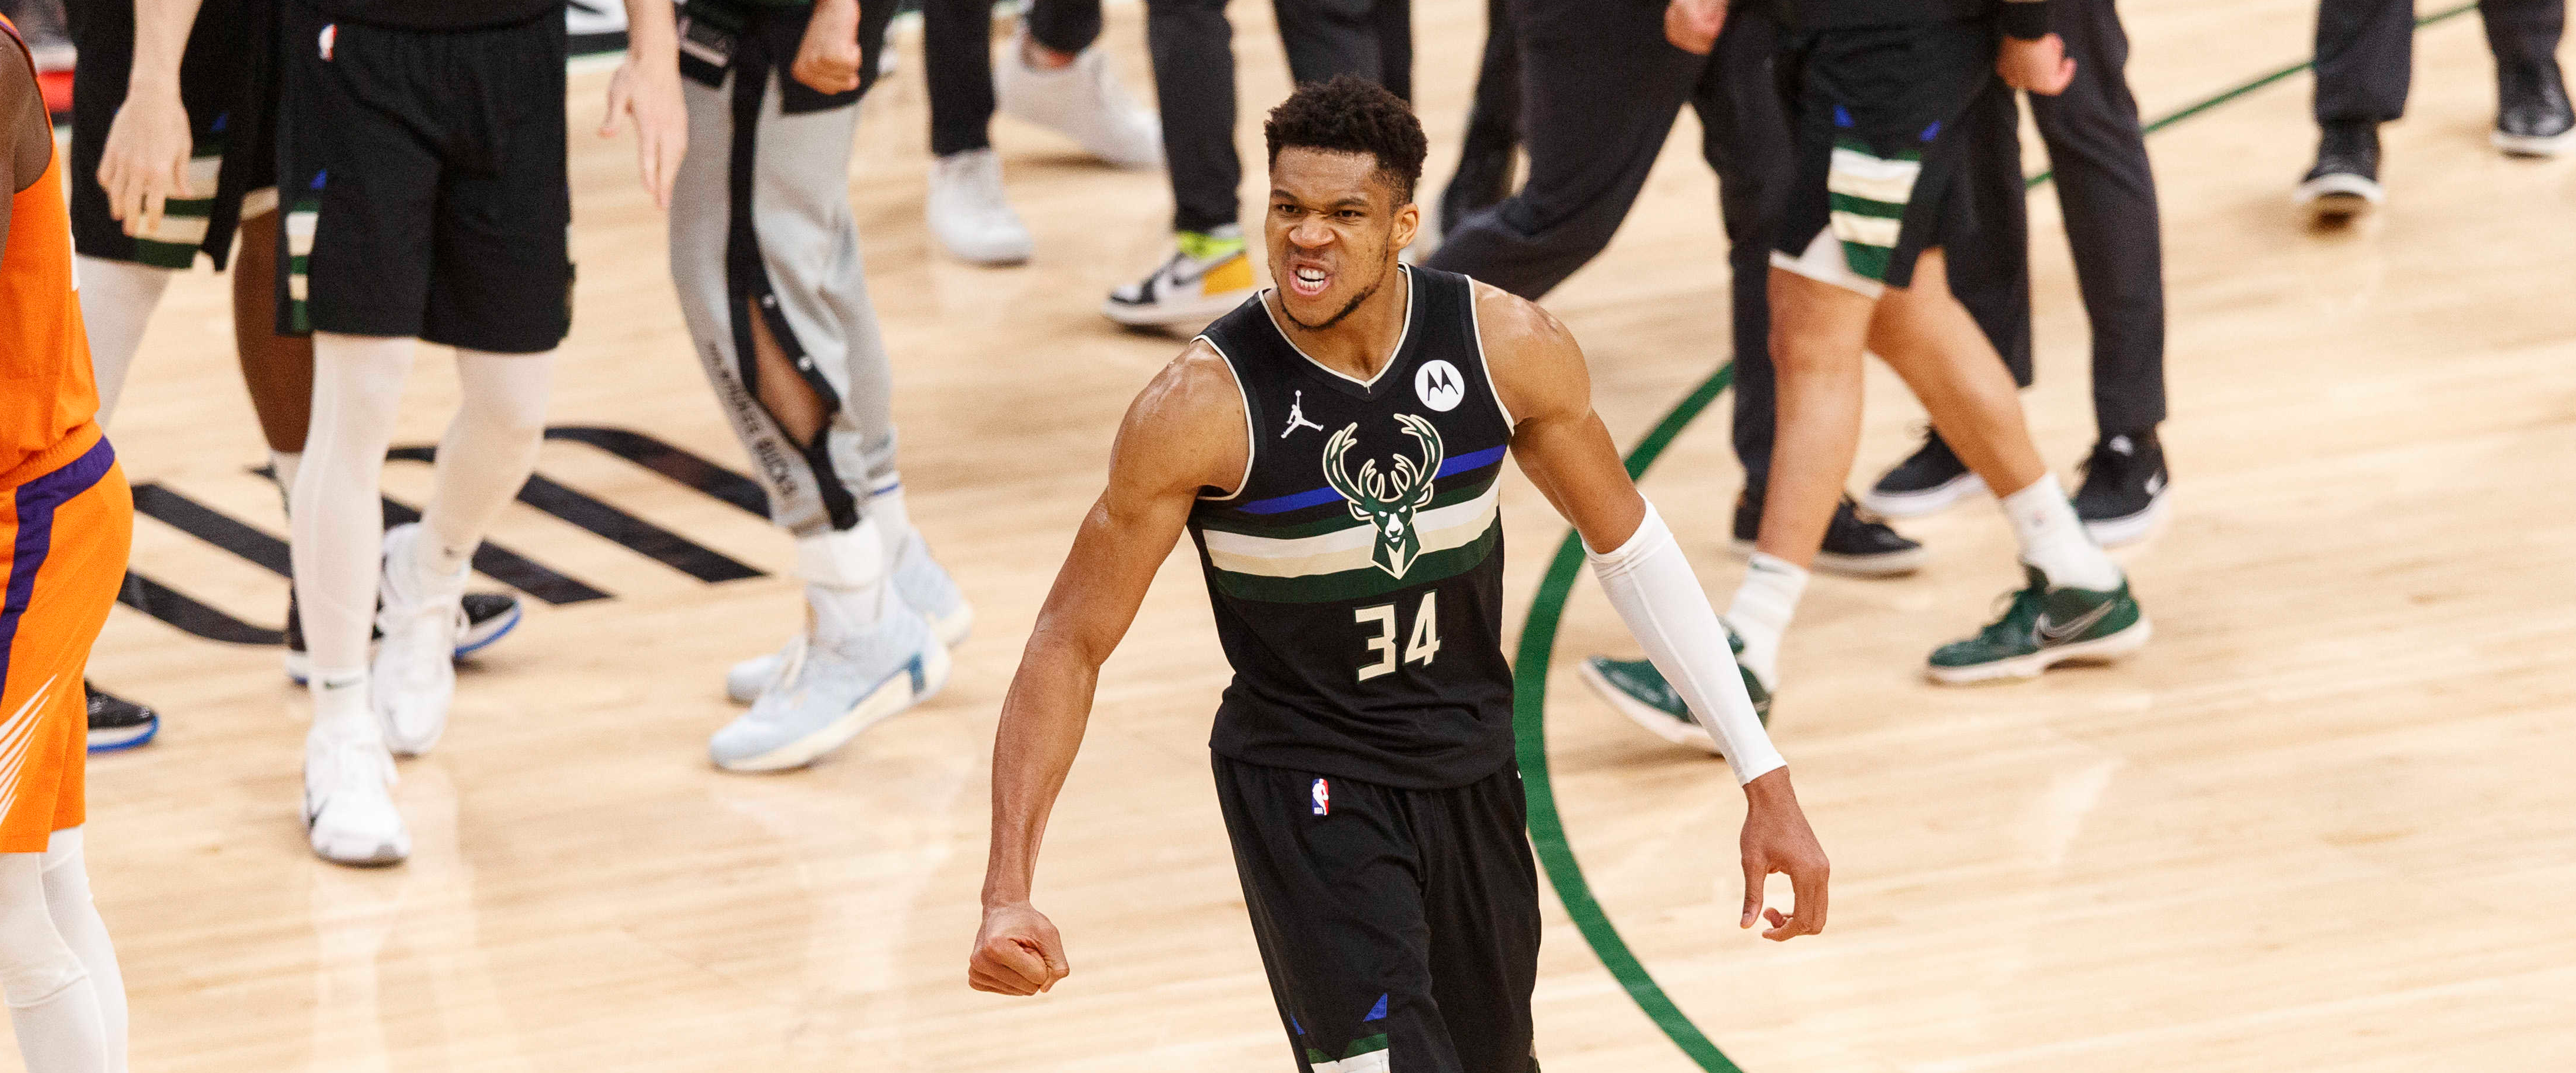 NBA Final: Giannis drops 50 as the Bucks end a 50-year title drought